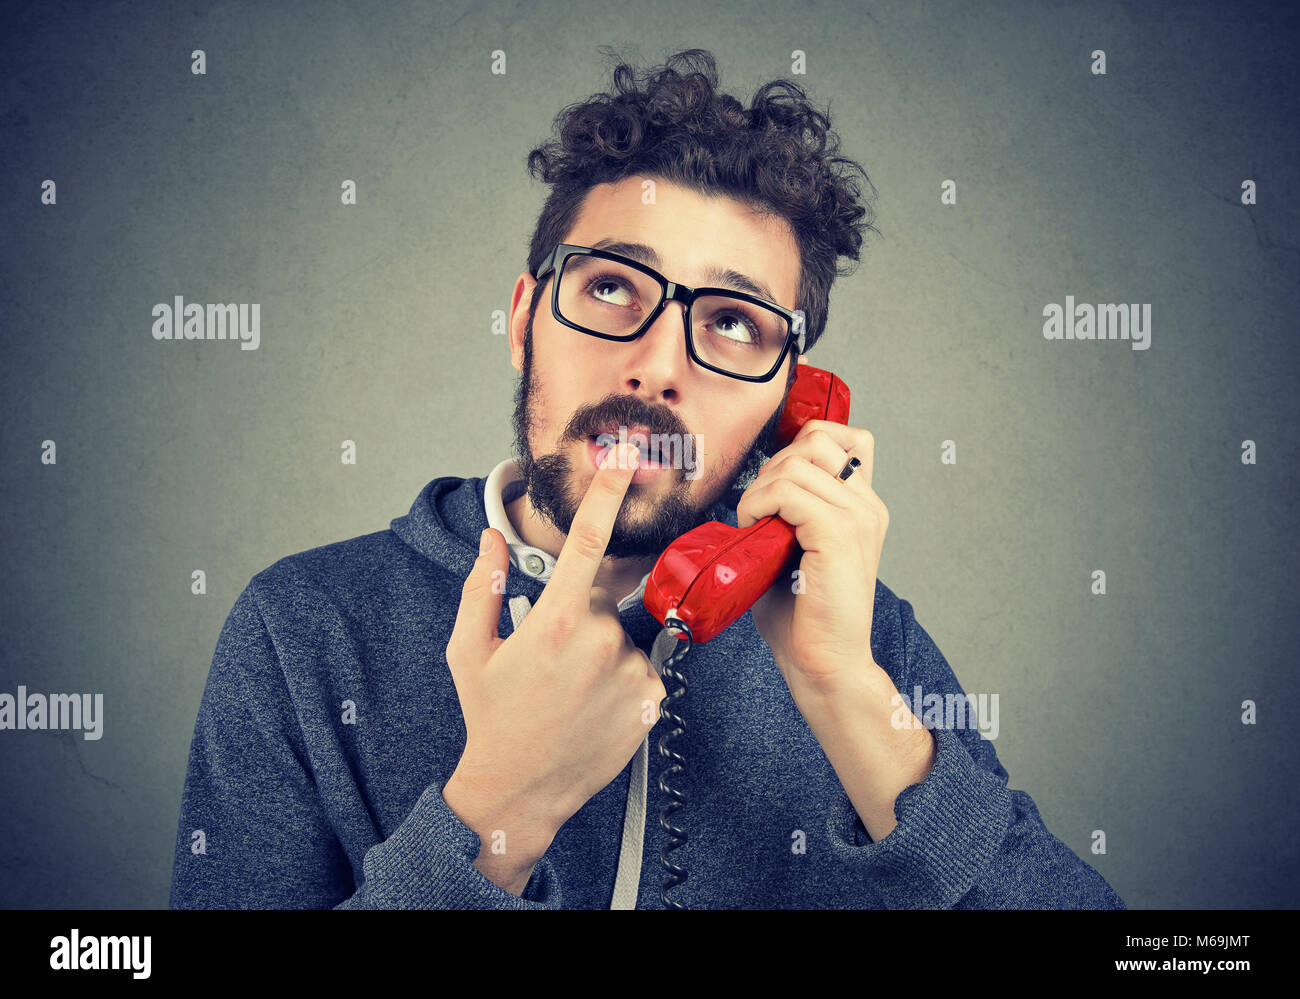 Young casual man looking up in confusion while talking on telephone against gray backdrop. - Stock Image